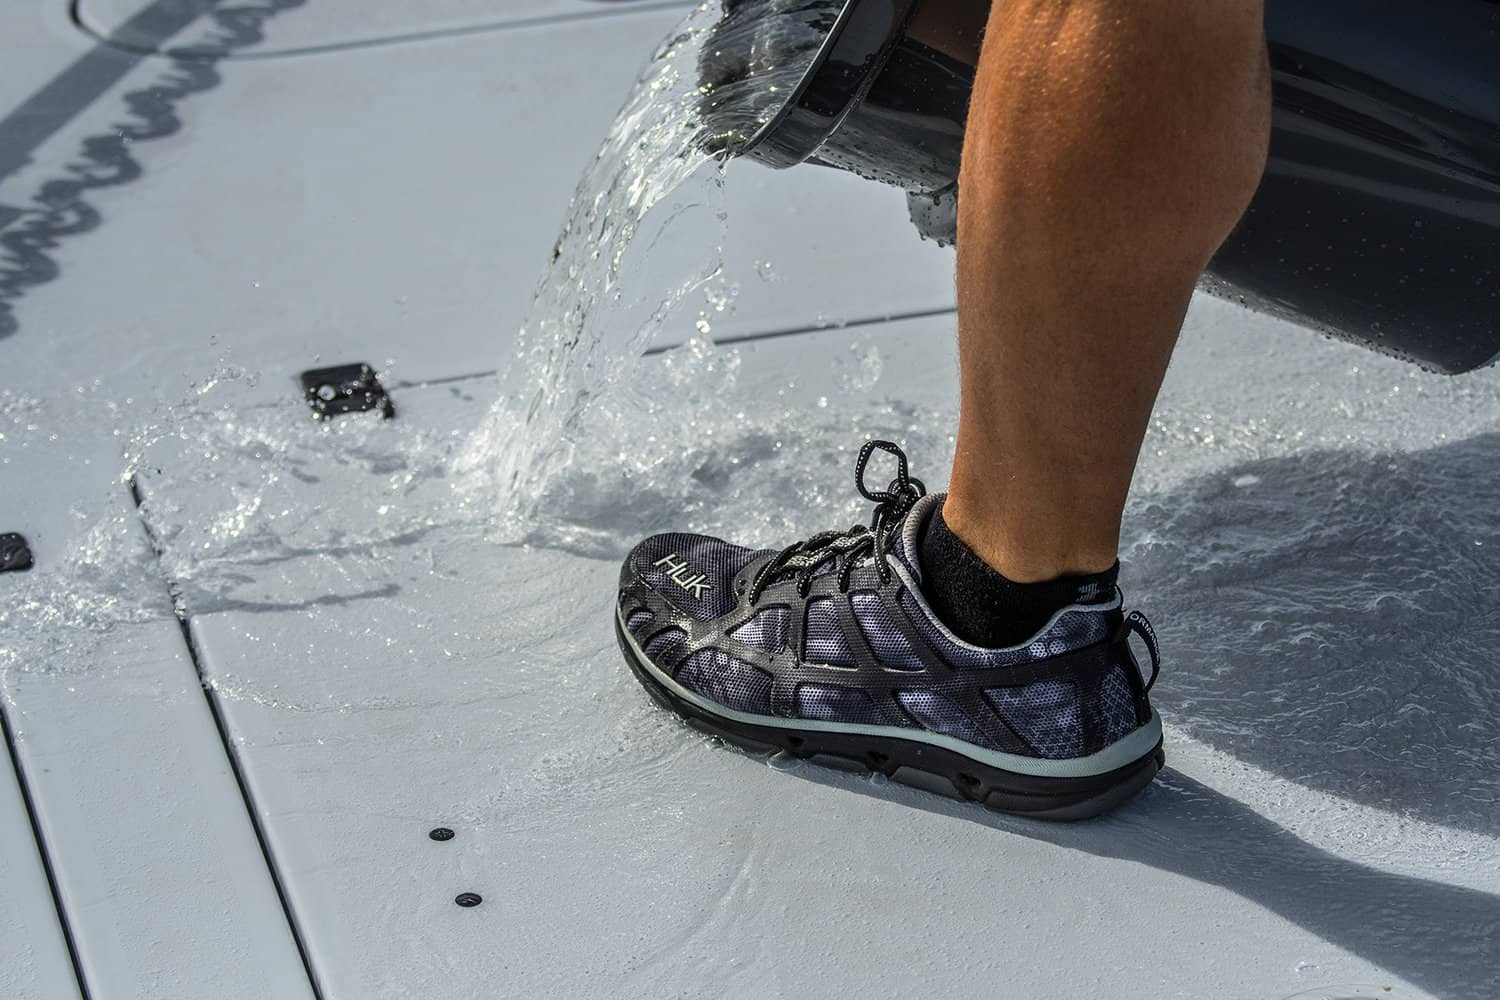 Best Fishing Shoes For Boats, Wading